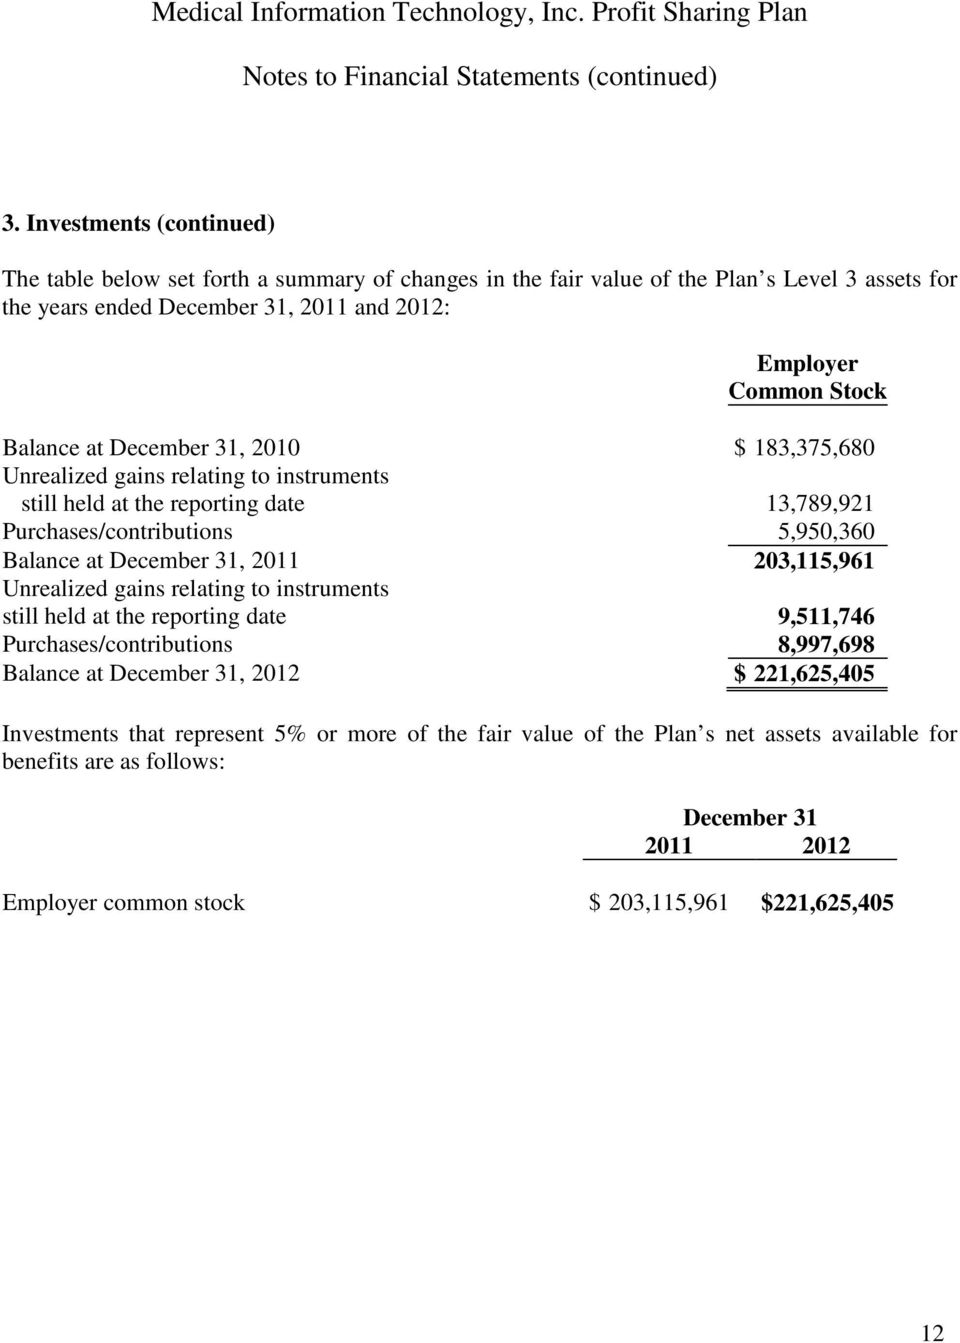 at December 31, 2010 $ 183,375,680 Unrealized gains relating to instruments still held at the reporting date 13,789,921 Purchases/contributions 5,950,360 Balance at December 31, 2011 203,115,961